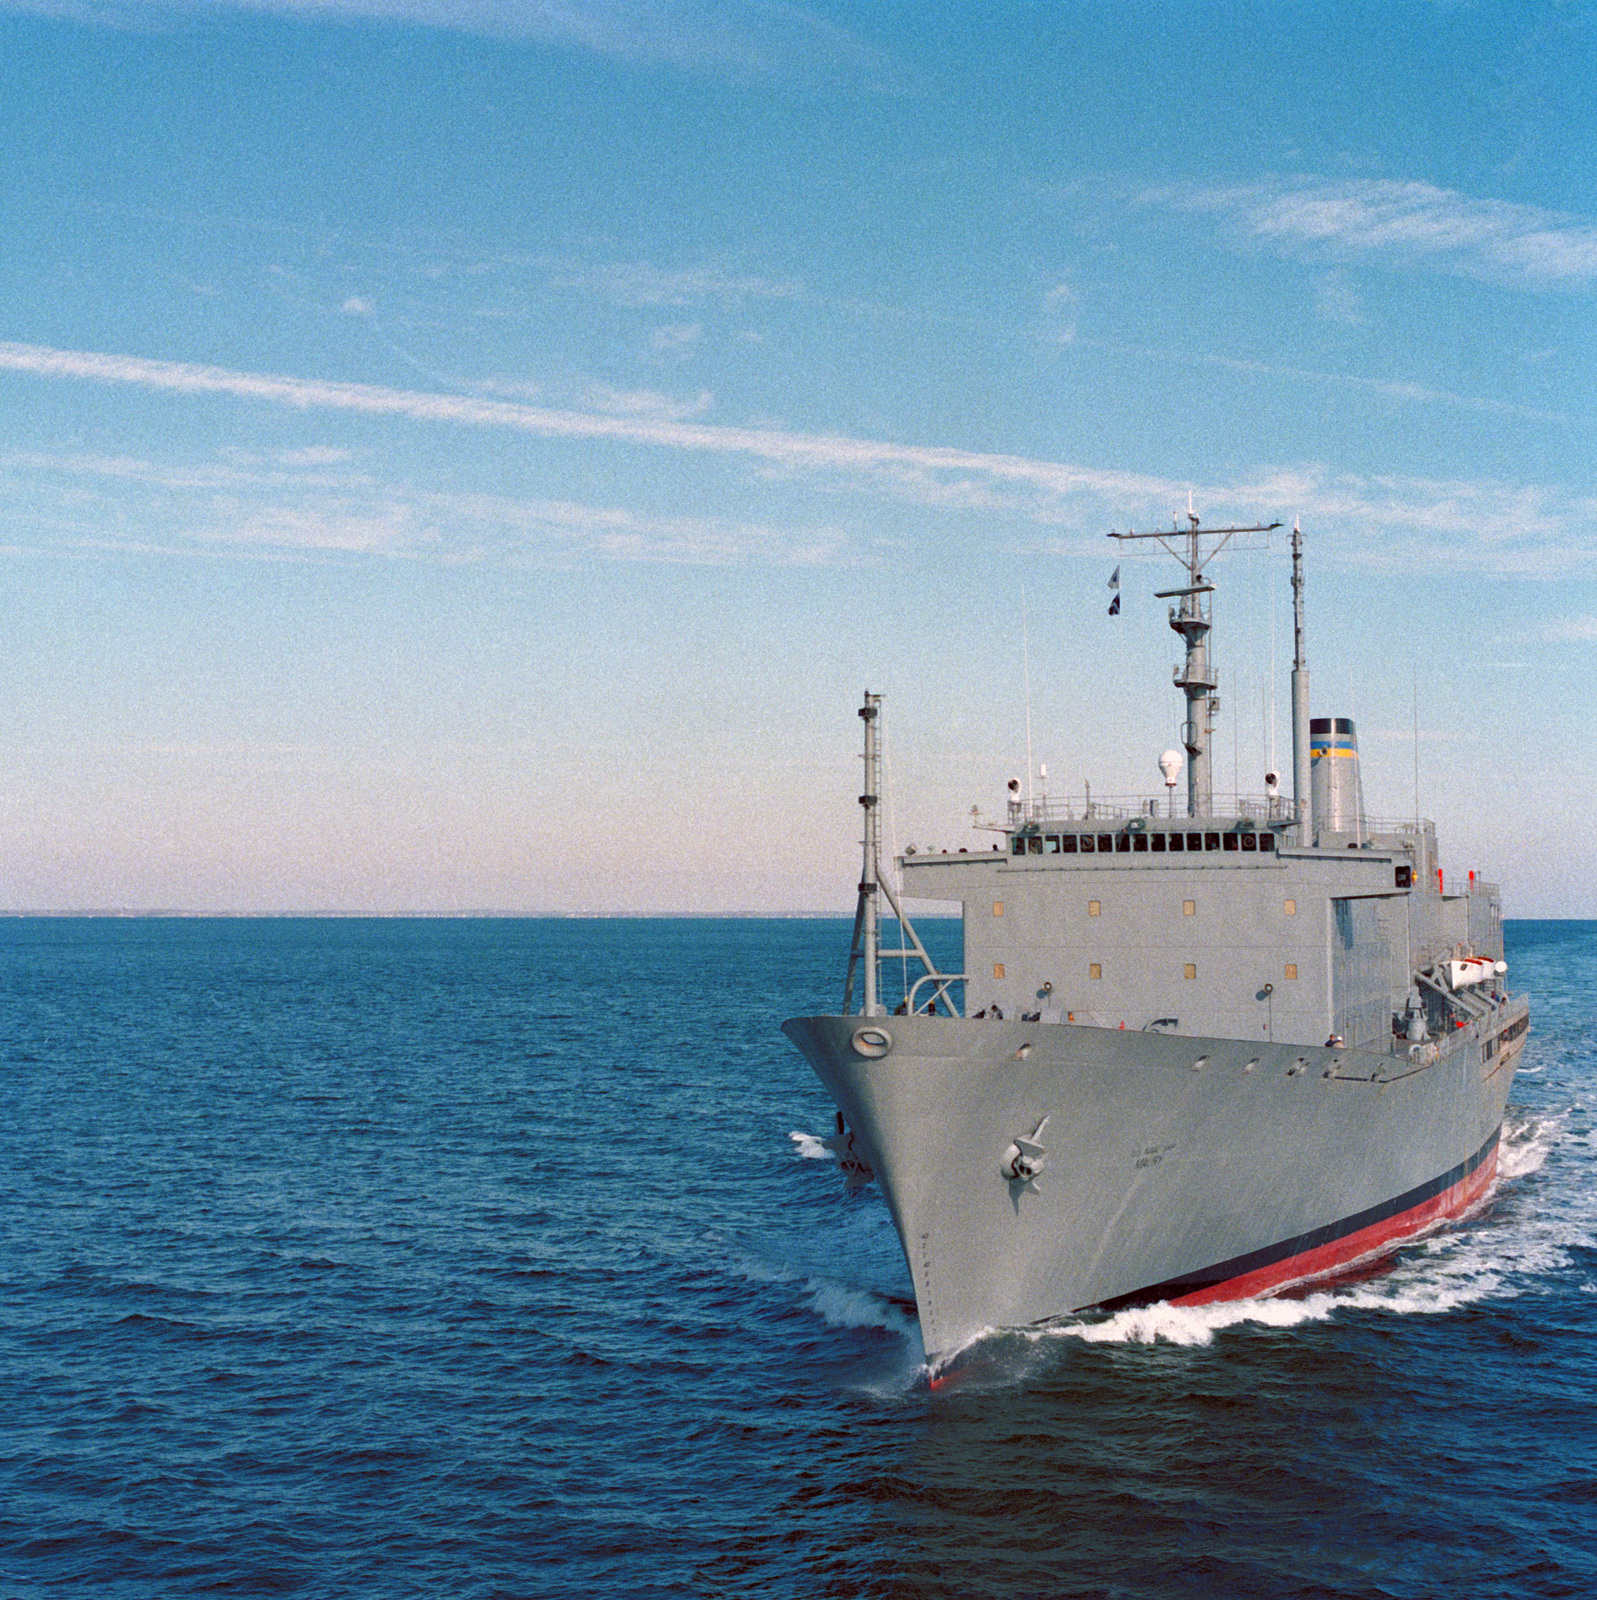 A port bow view of the Oceanographic Research Ship USNS MAURY (T-AGS 39) underway during sea trials